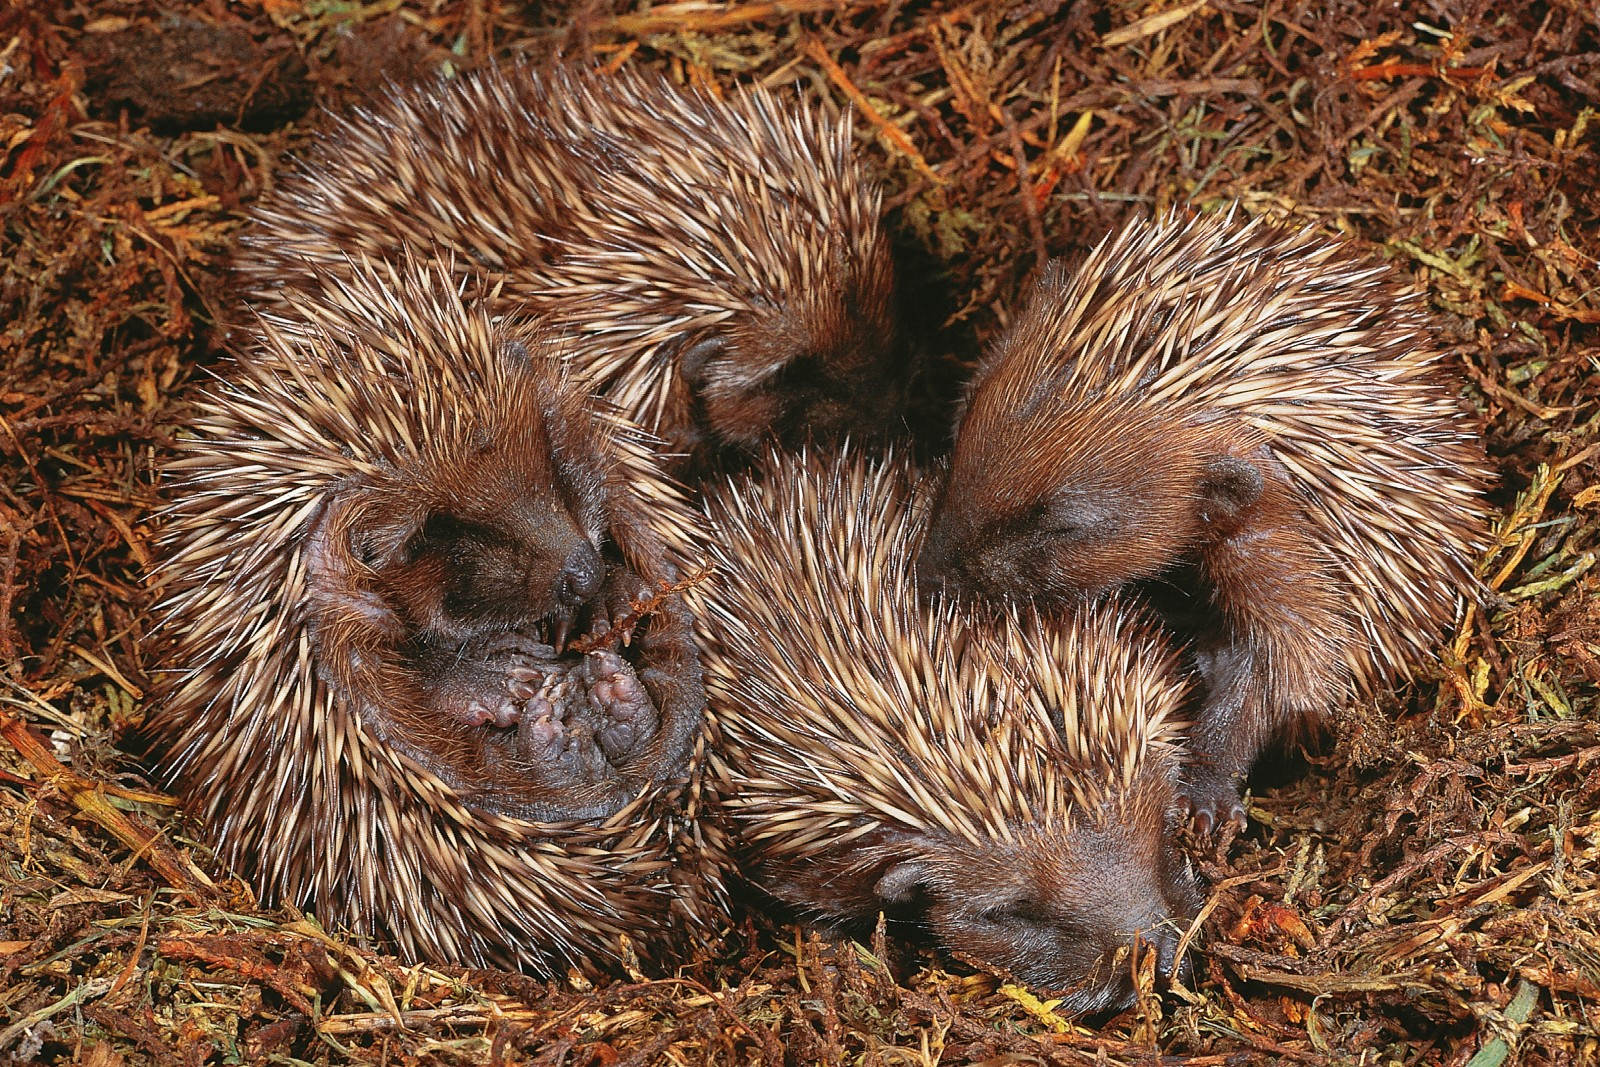 By the time they become independent of their mothers at six or seven weeks of age, only one or two of this litter will likely remain, for mortality among baby hedgehogs is high. Born without spines, the babies sprout white prickles within a day. A darker set starts to grow a day or two later. These 20-day-old hoglets are just starting to see their world, for hedgehog eyes remain closed for the first two weeks of life.